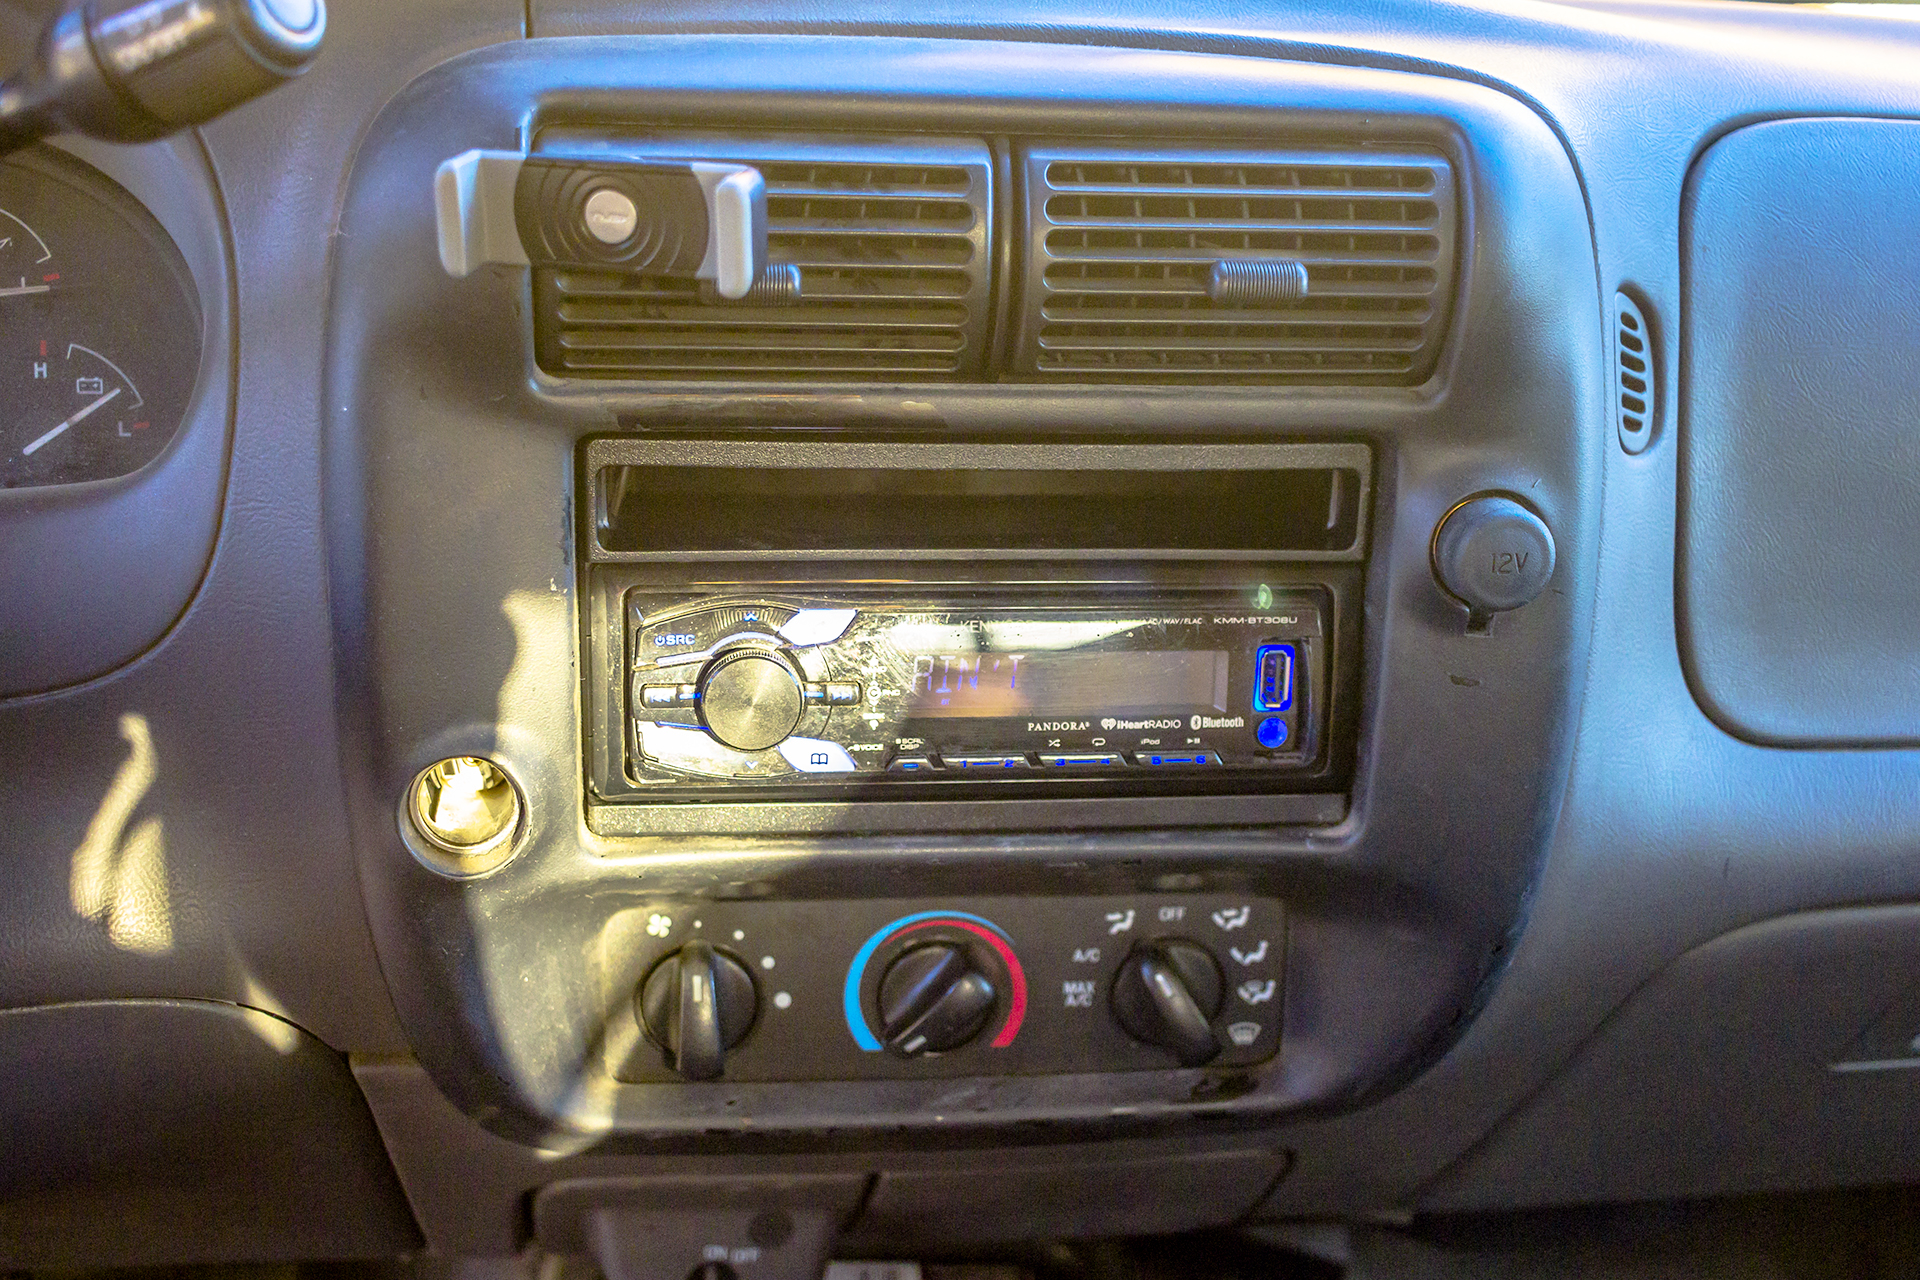 2002 Ford Ranger gets a Bluetooth radio — Twelve Volt